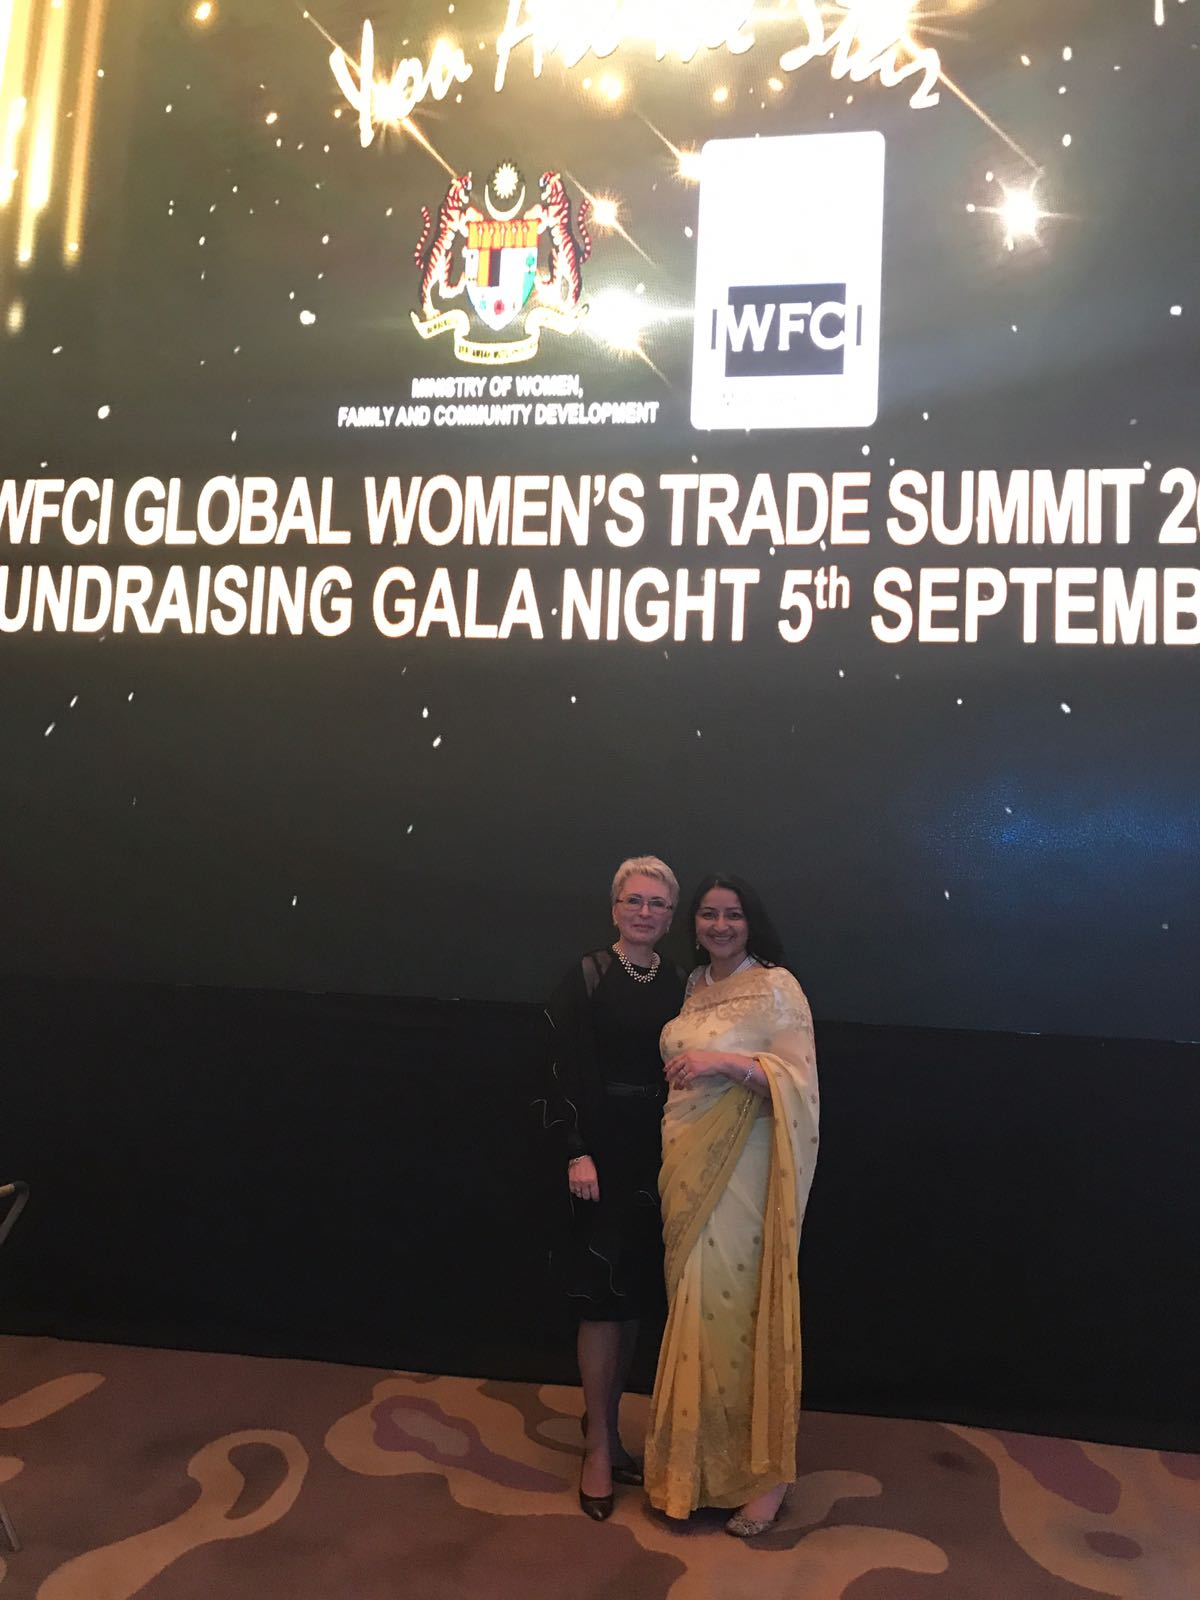 Global Women's Trade Summit, 4 – 5 September 2017